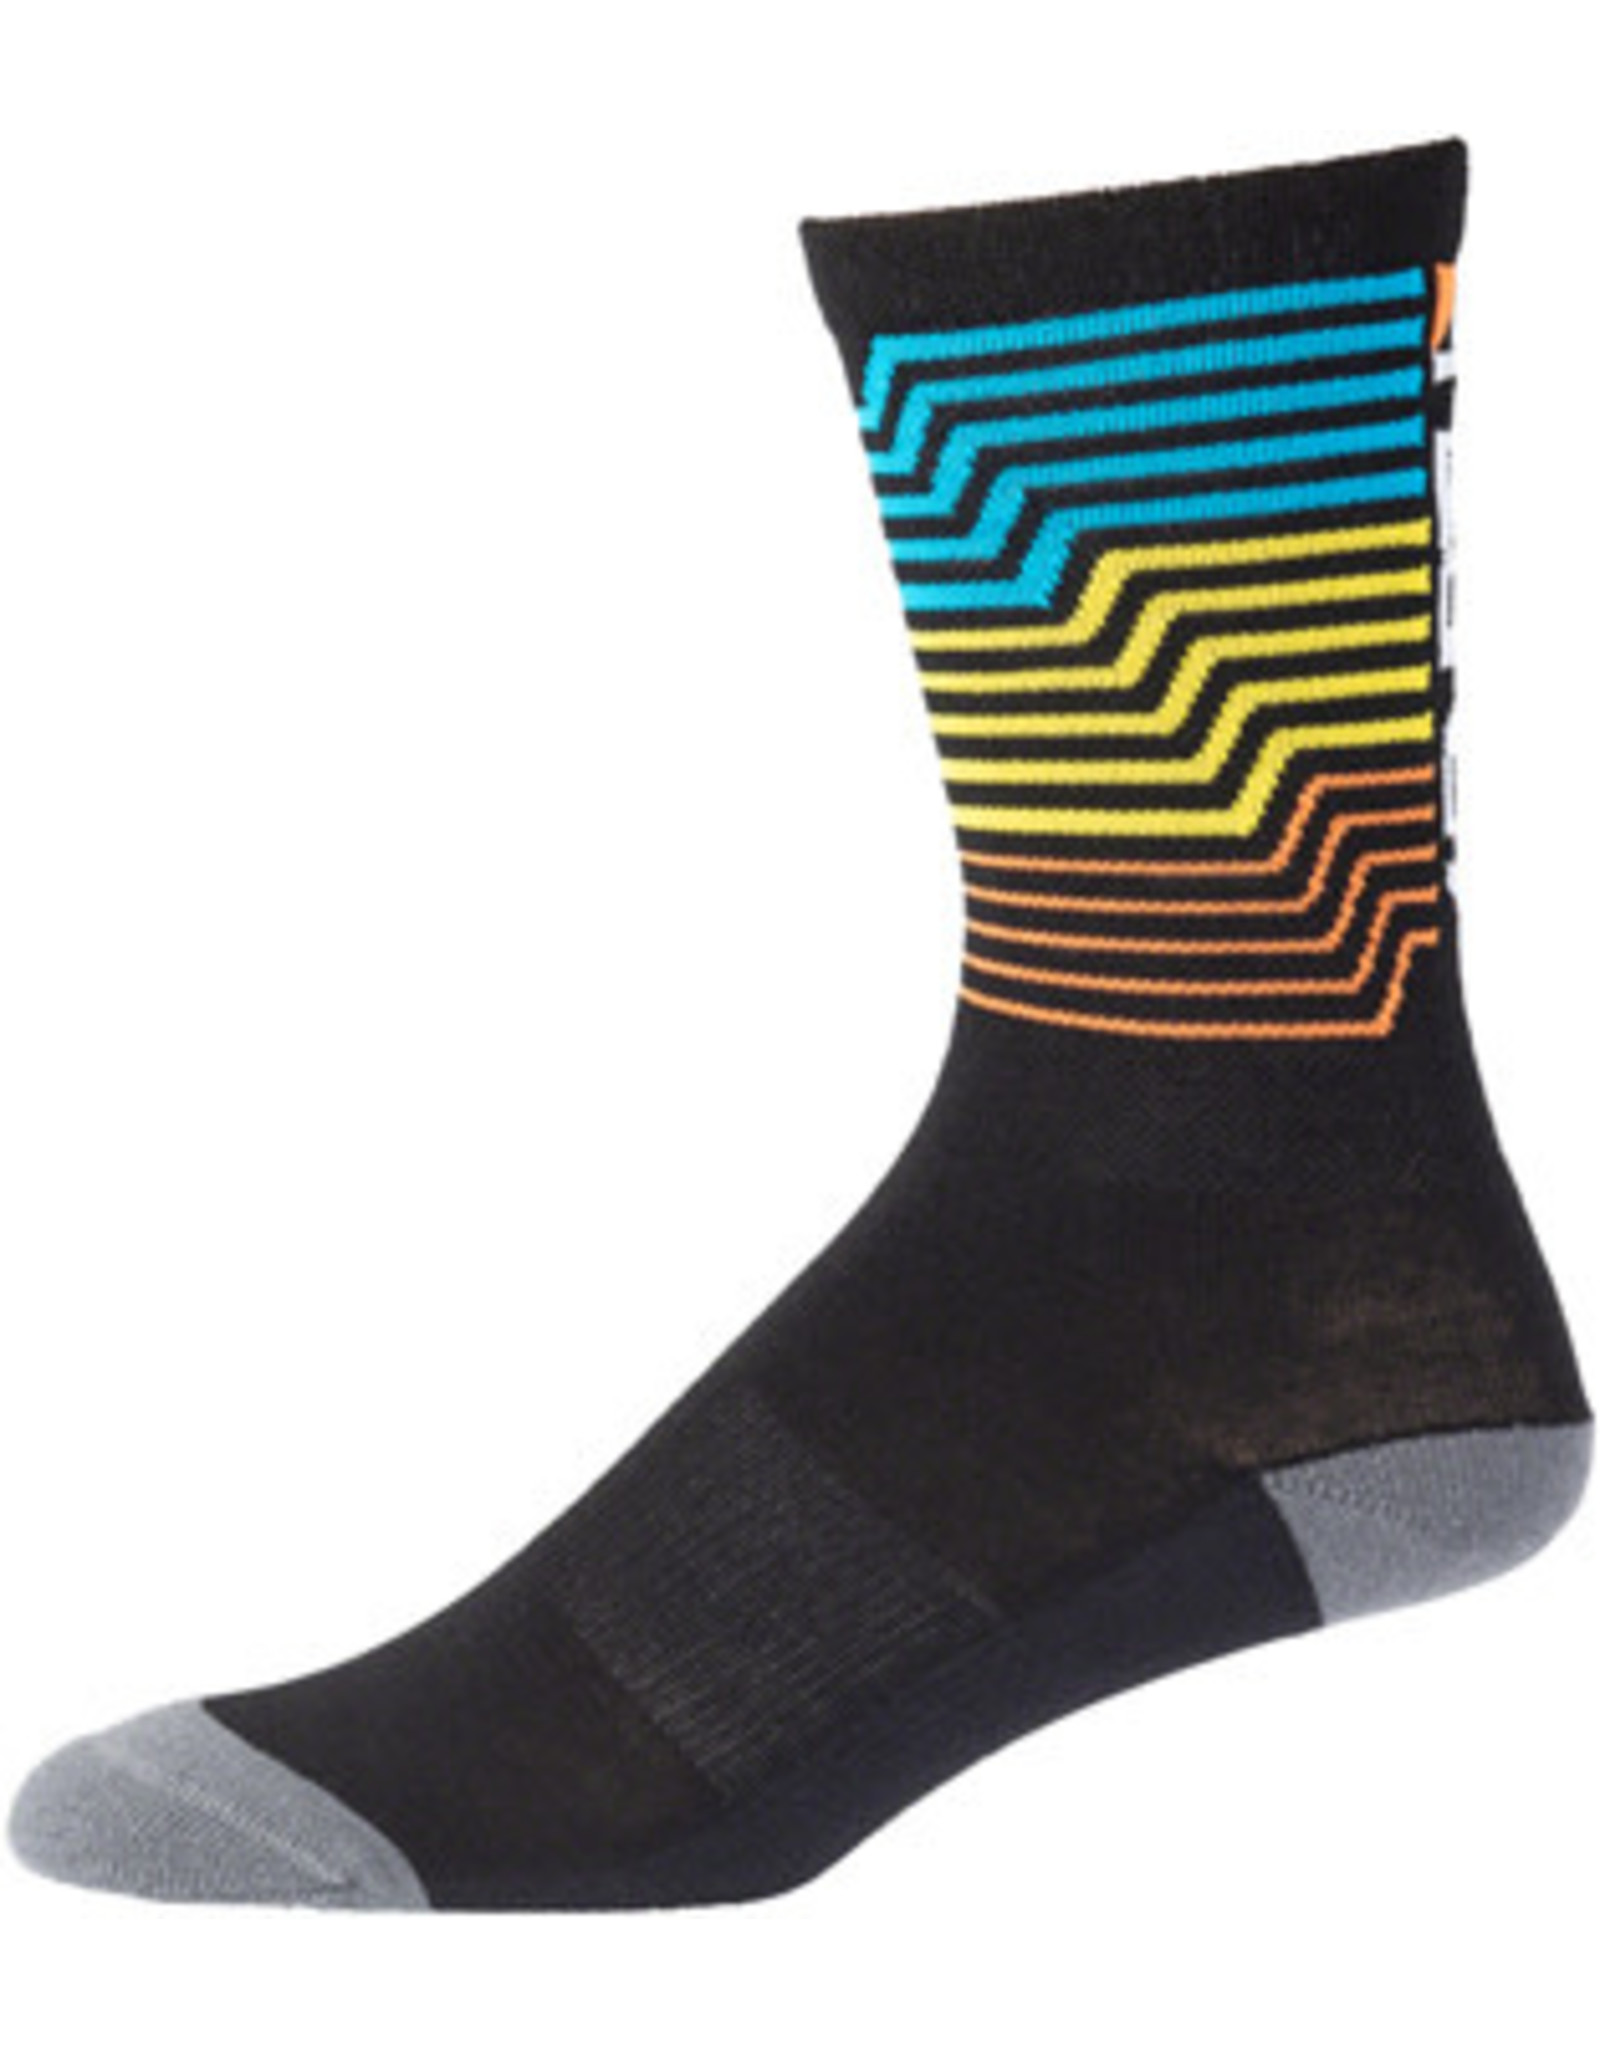 45NRTH 45NRTH Electric Rift Midweight Sock